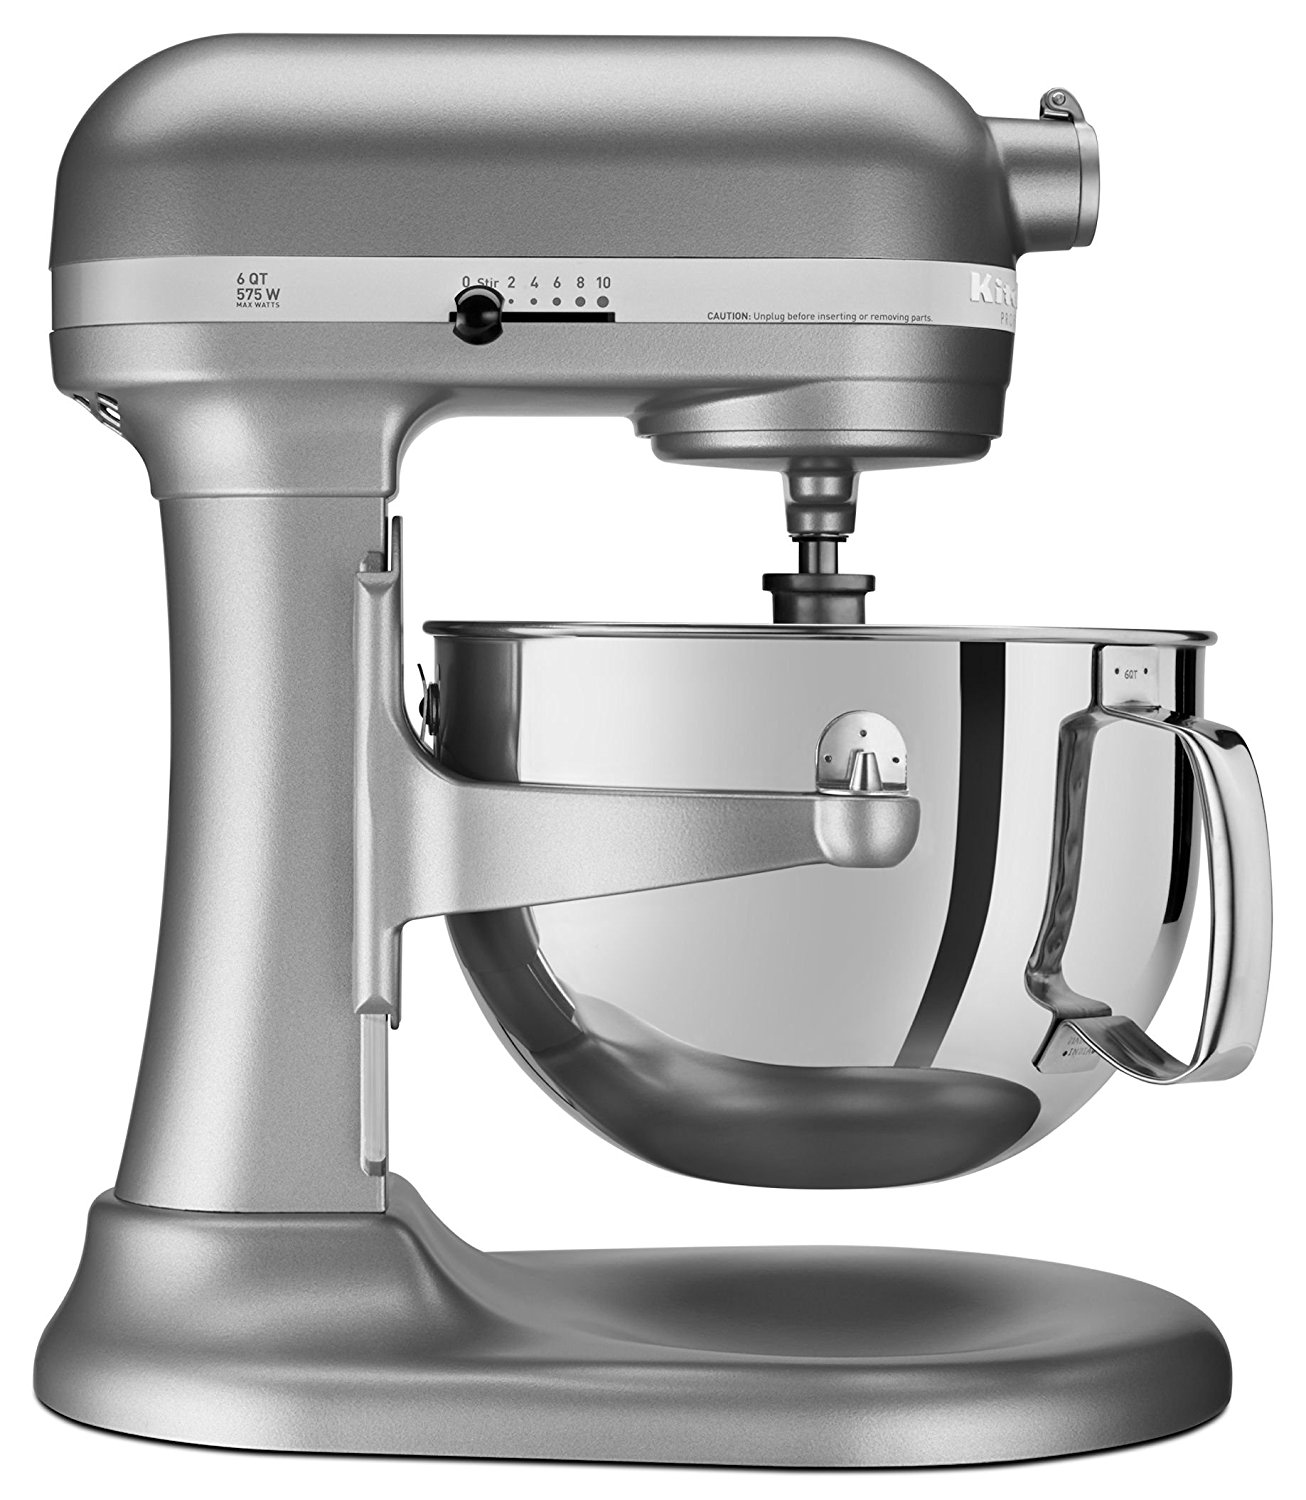 E KitchenAid RKP26M1XSL Professional 600 Series BowlLift Stand Mixer 6 Quart  Silver CERTIFIED REFURBISHED  Walmartcom